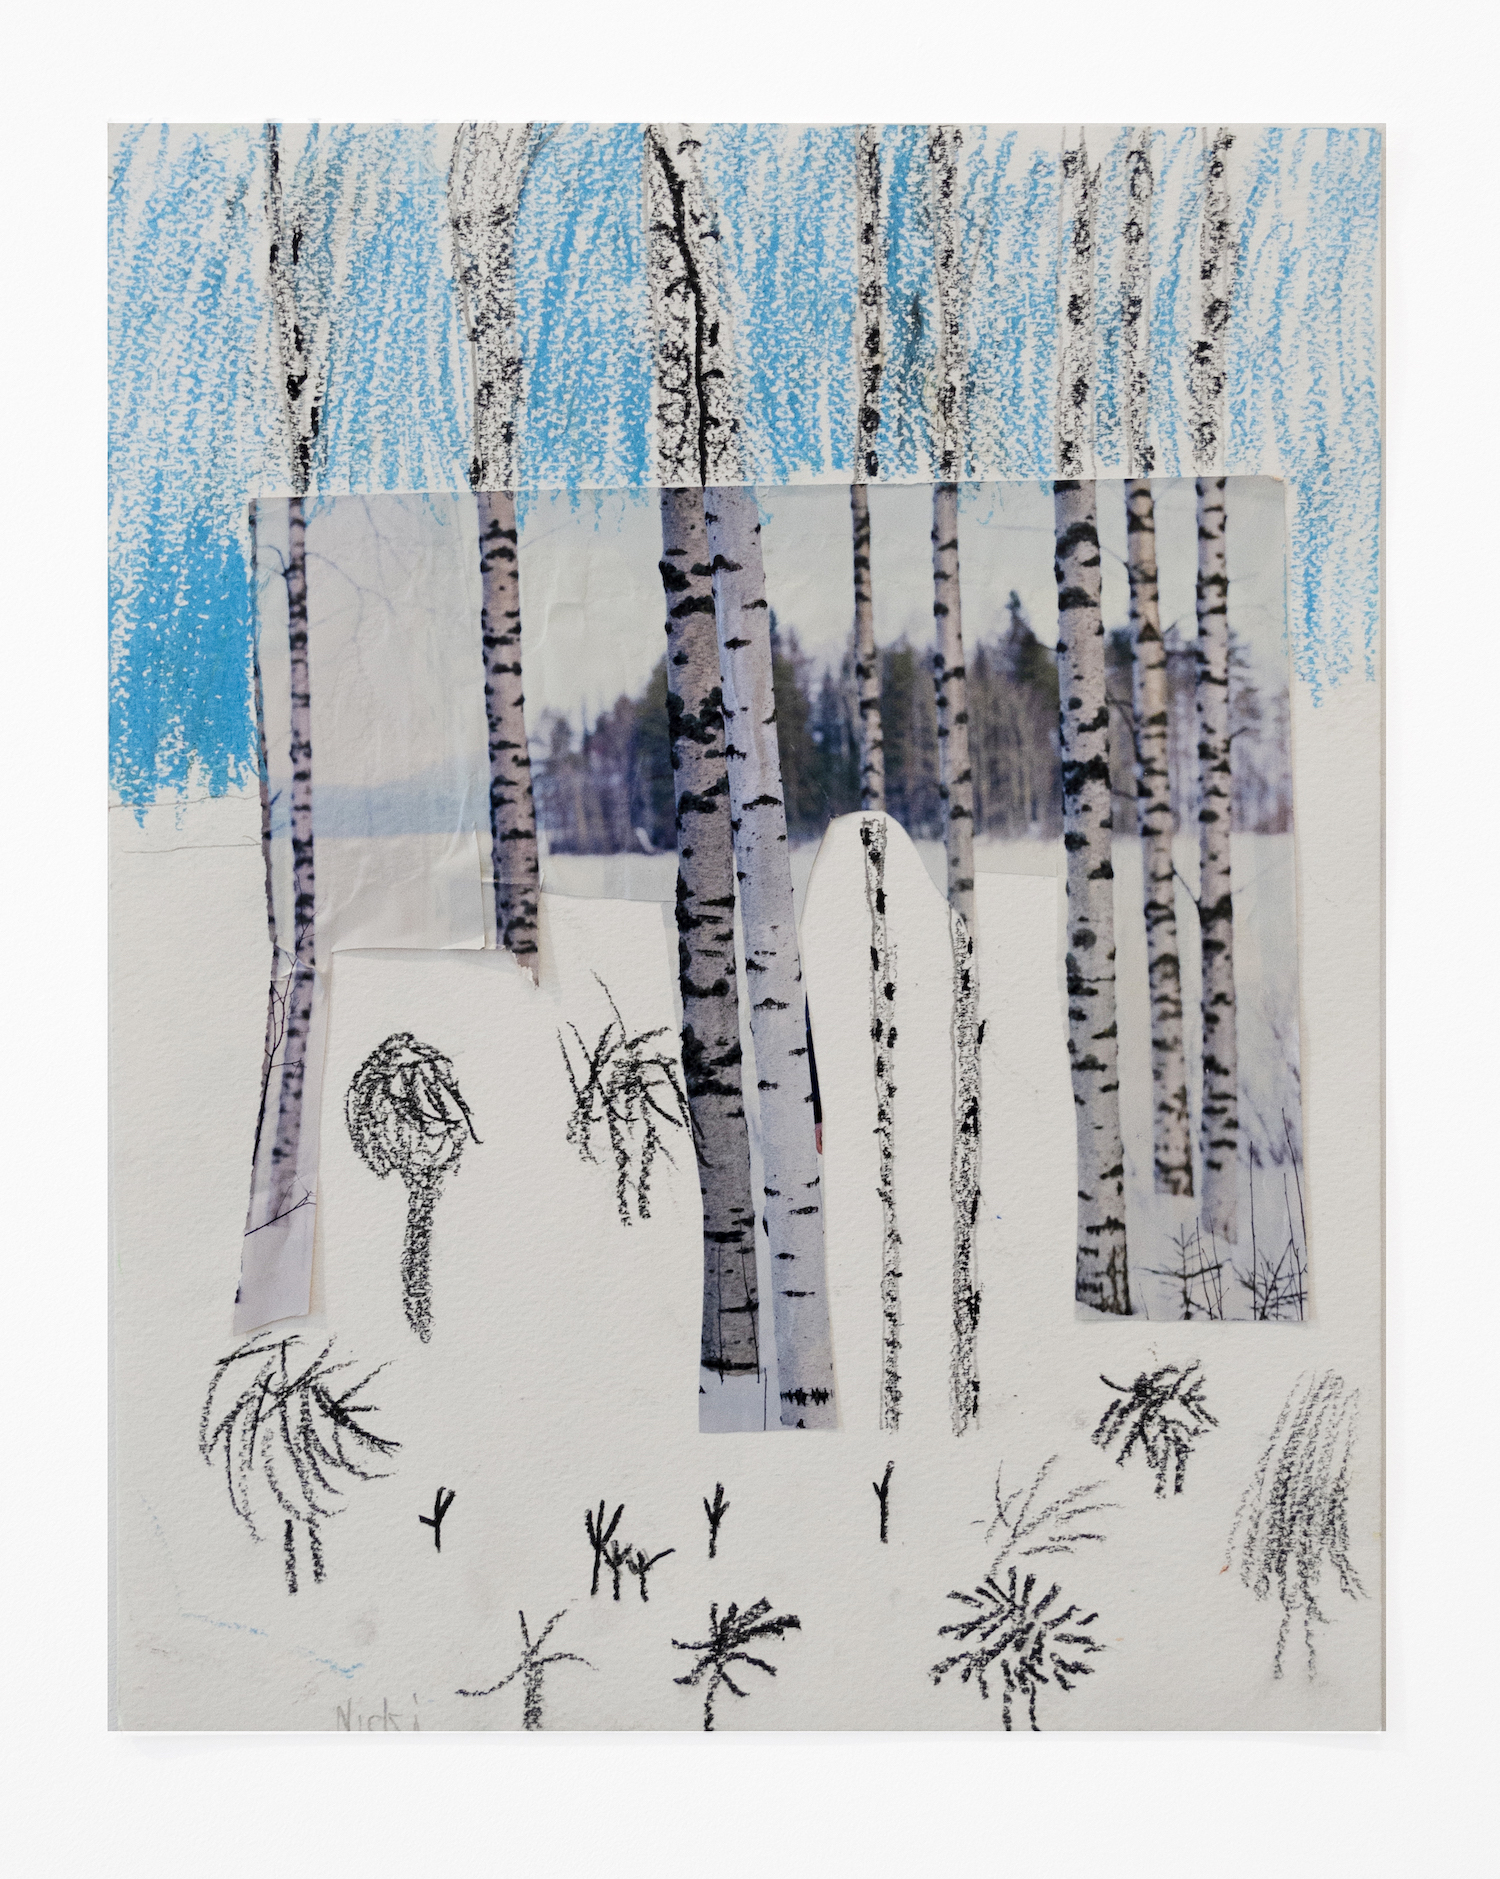 Nicola Remmel   Birch Trees , 2018 Collage and watercolor on paper 14 x 11 inches (35.56 x 27.94 cm)  Starting bid: $20